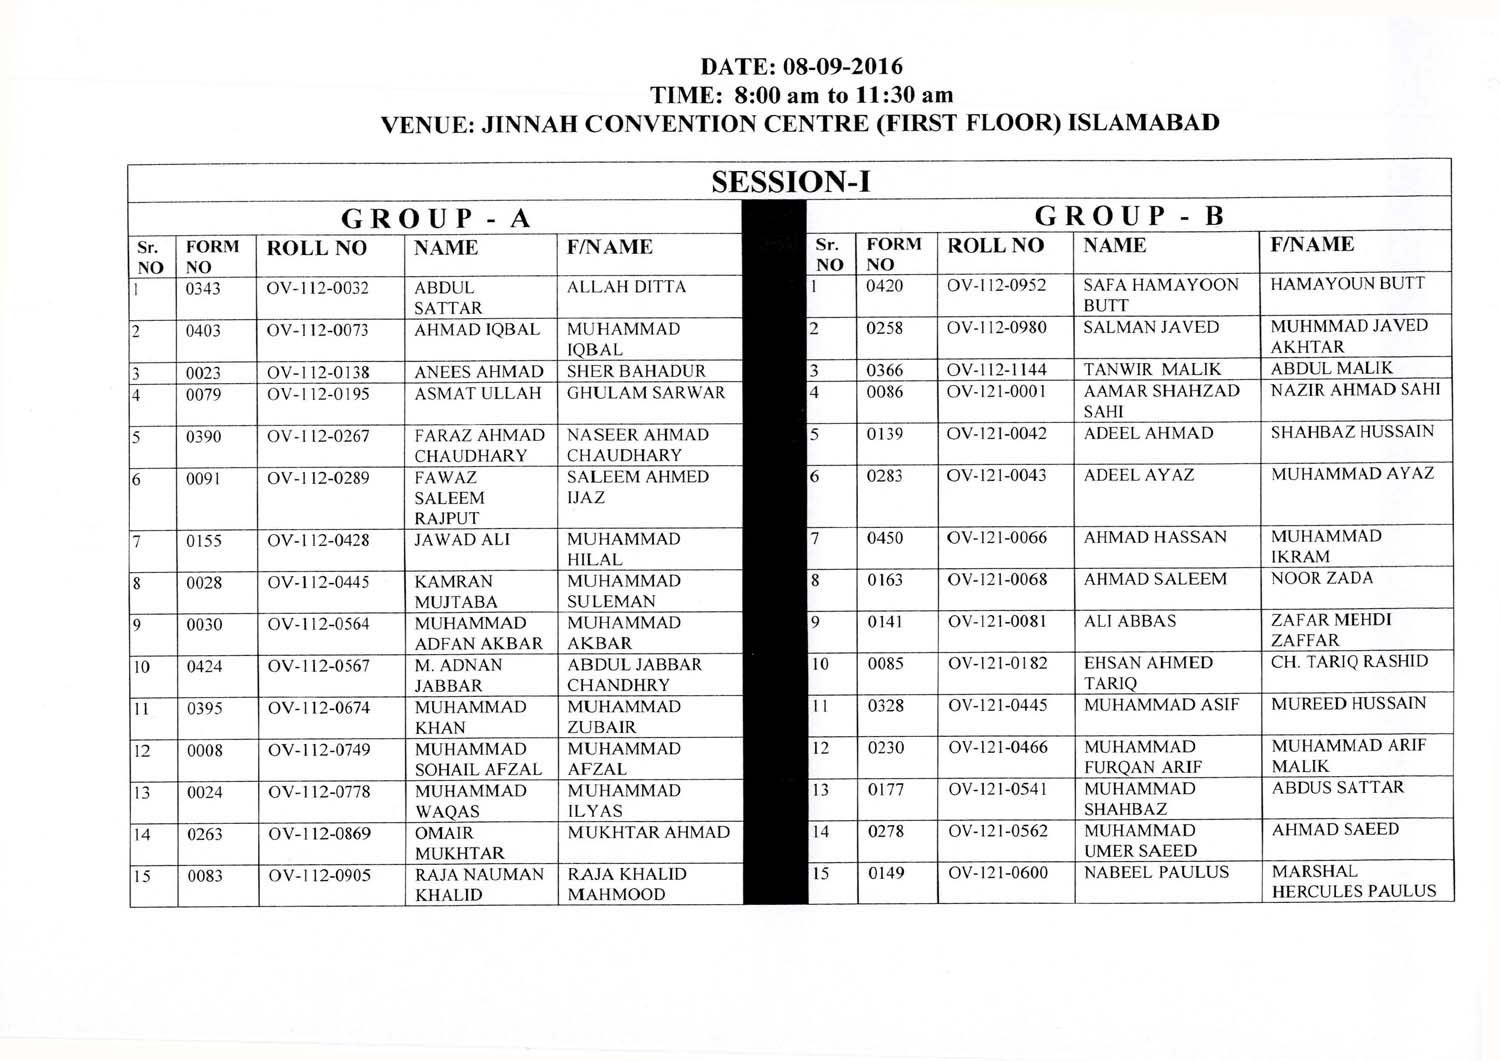 Date wise Schedule of NEB Step III Examination 2016